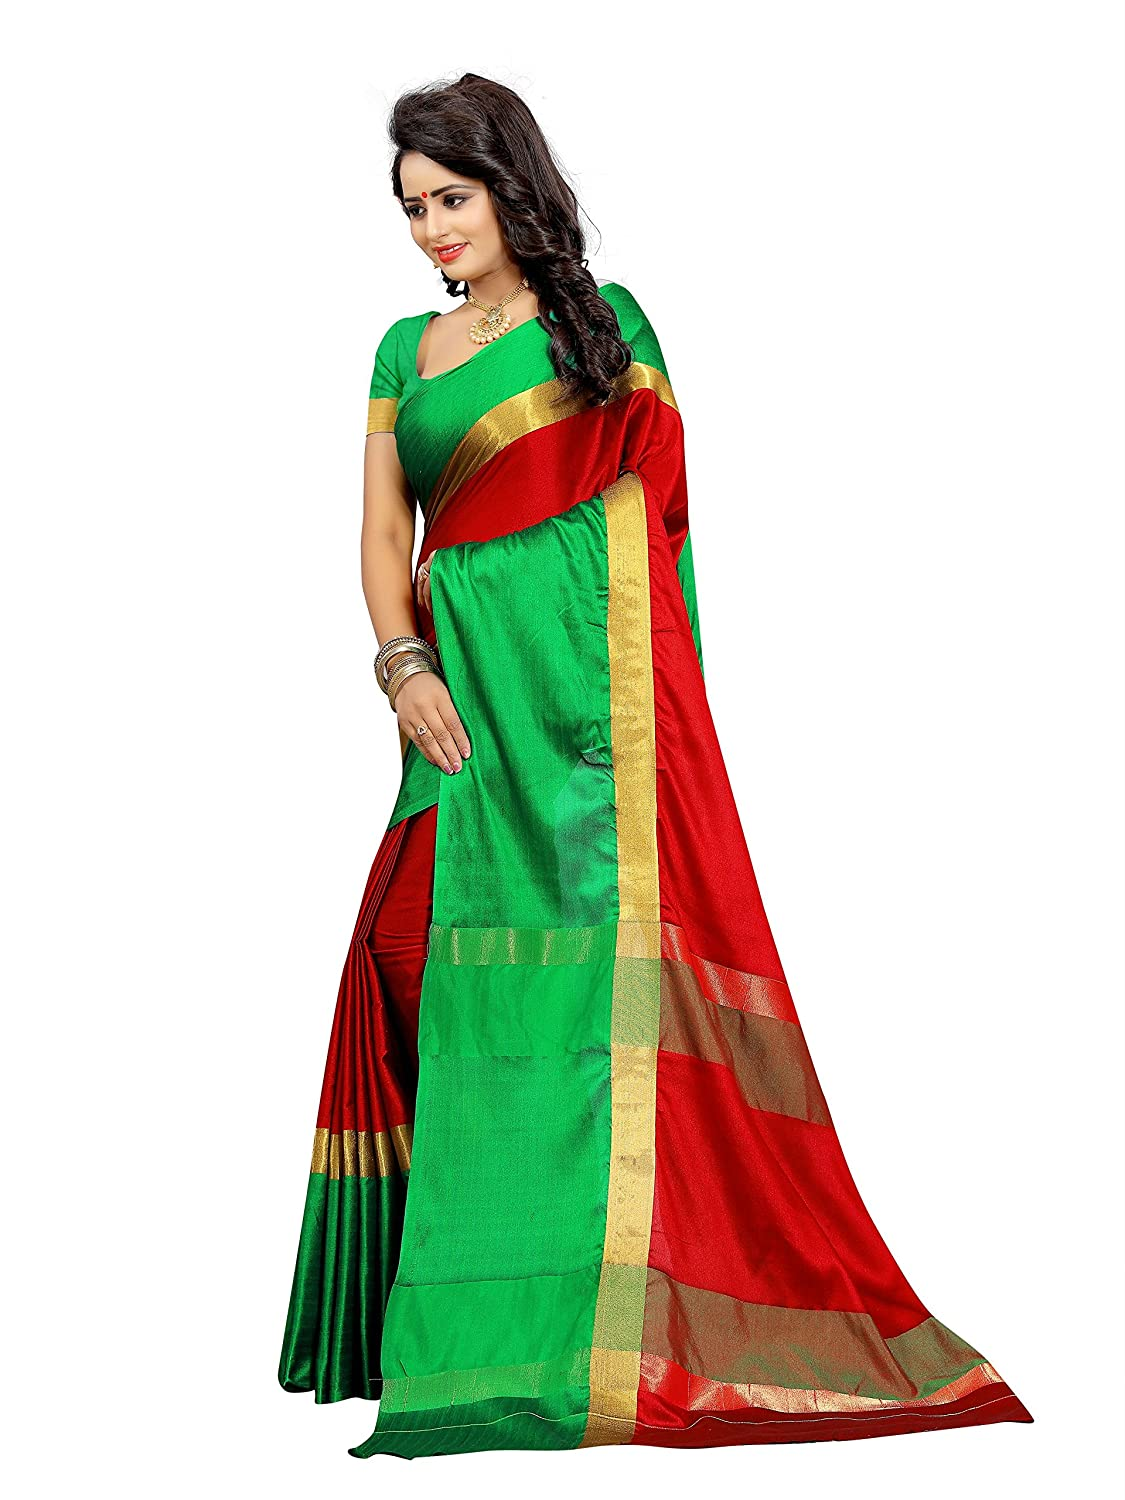 a301abe366 Morpich Fashion Women's Printed Cotton Silk Saree with Blouse Piece (T1042,  Golden, Free Size): Amazon.in: Clothing & Accessories